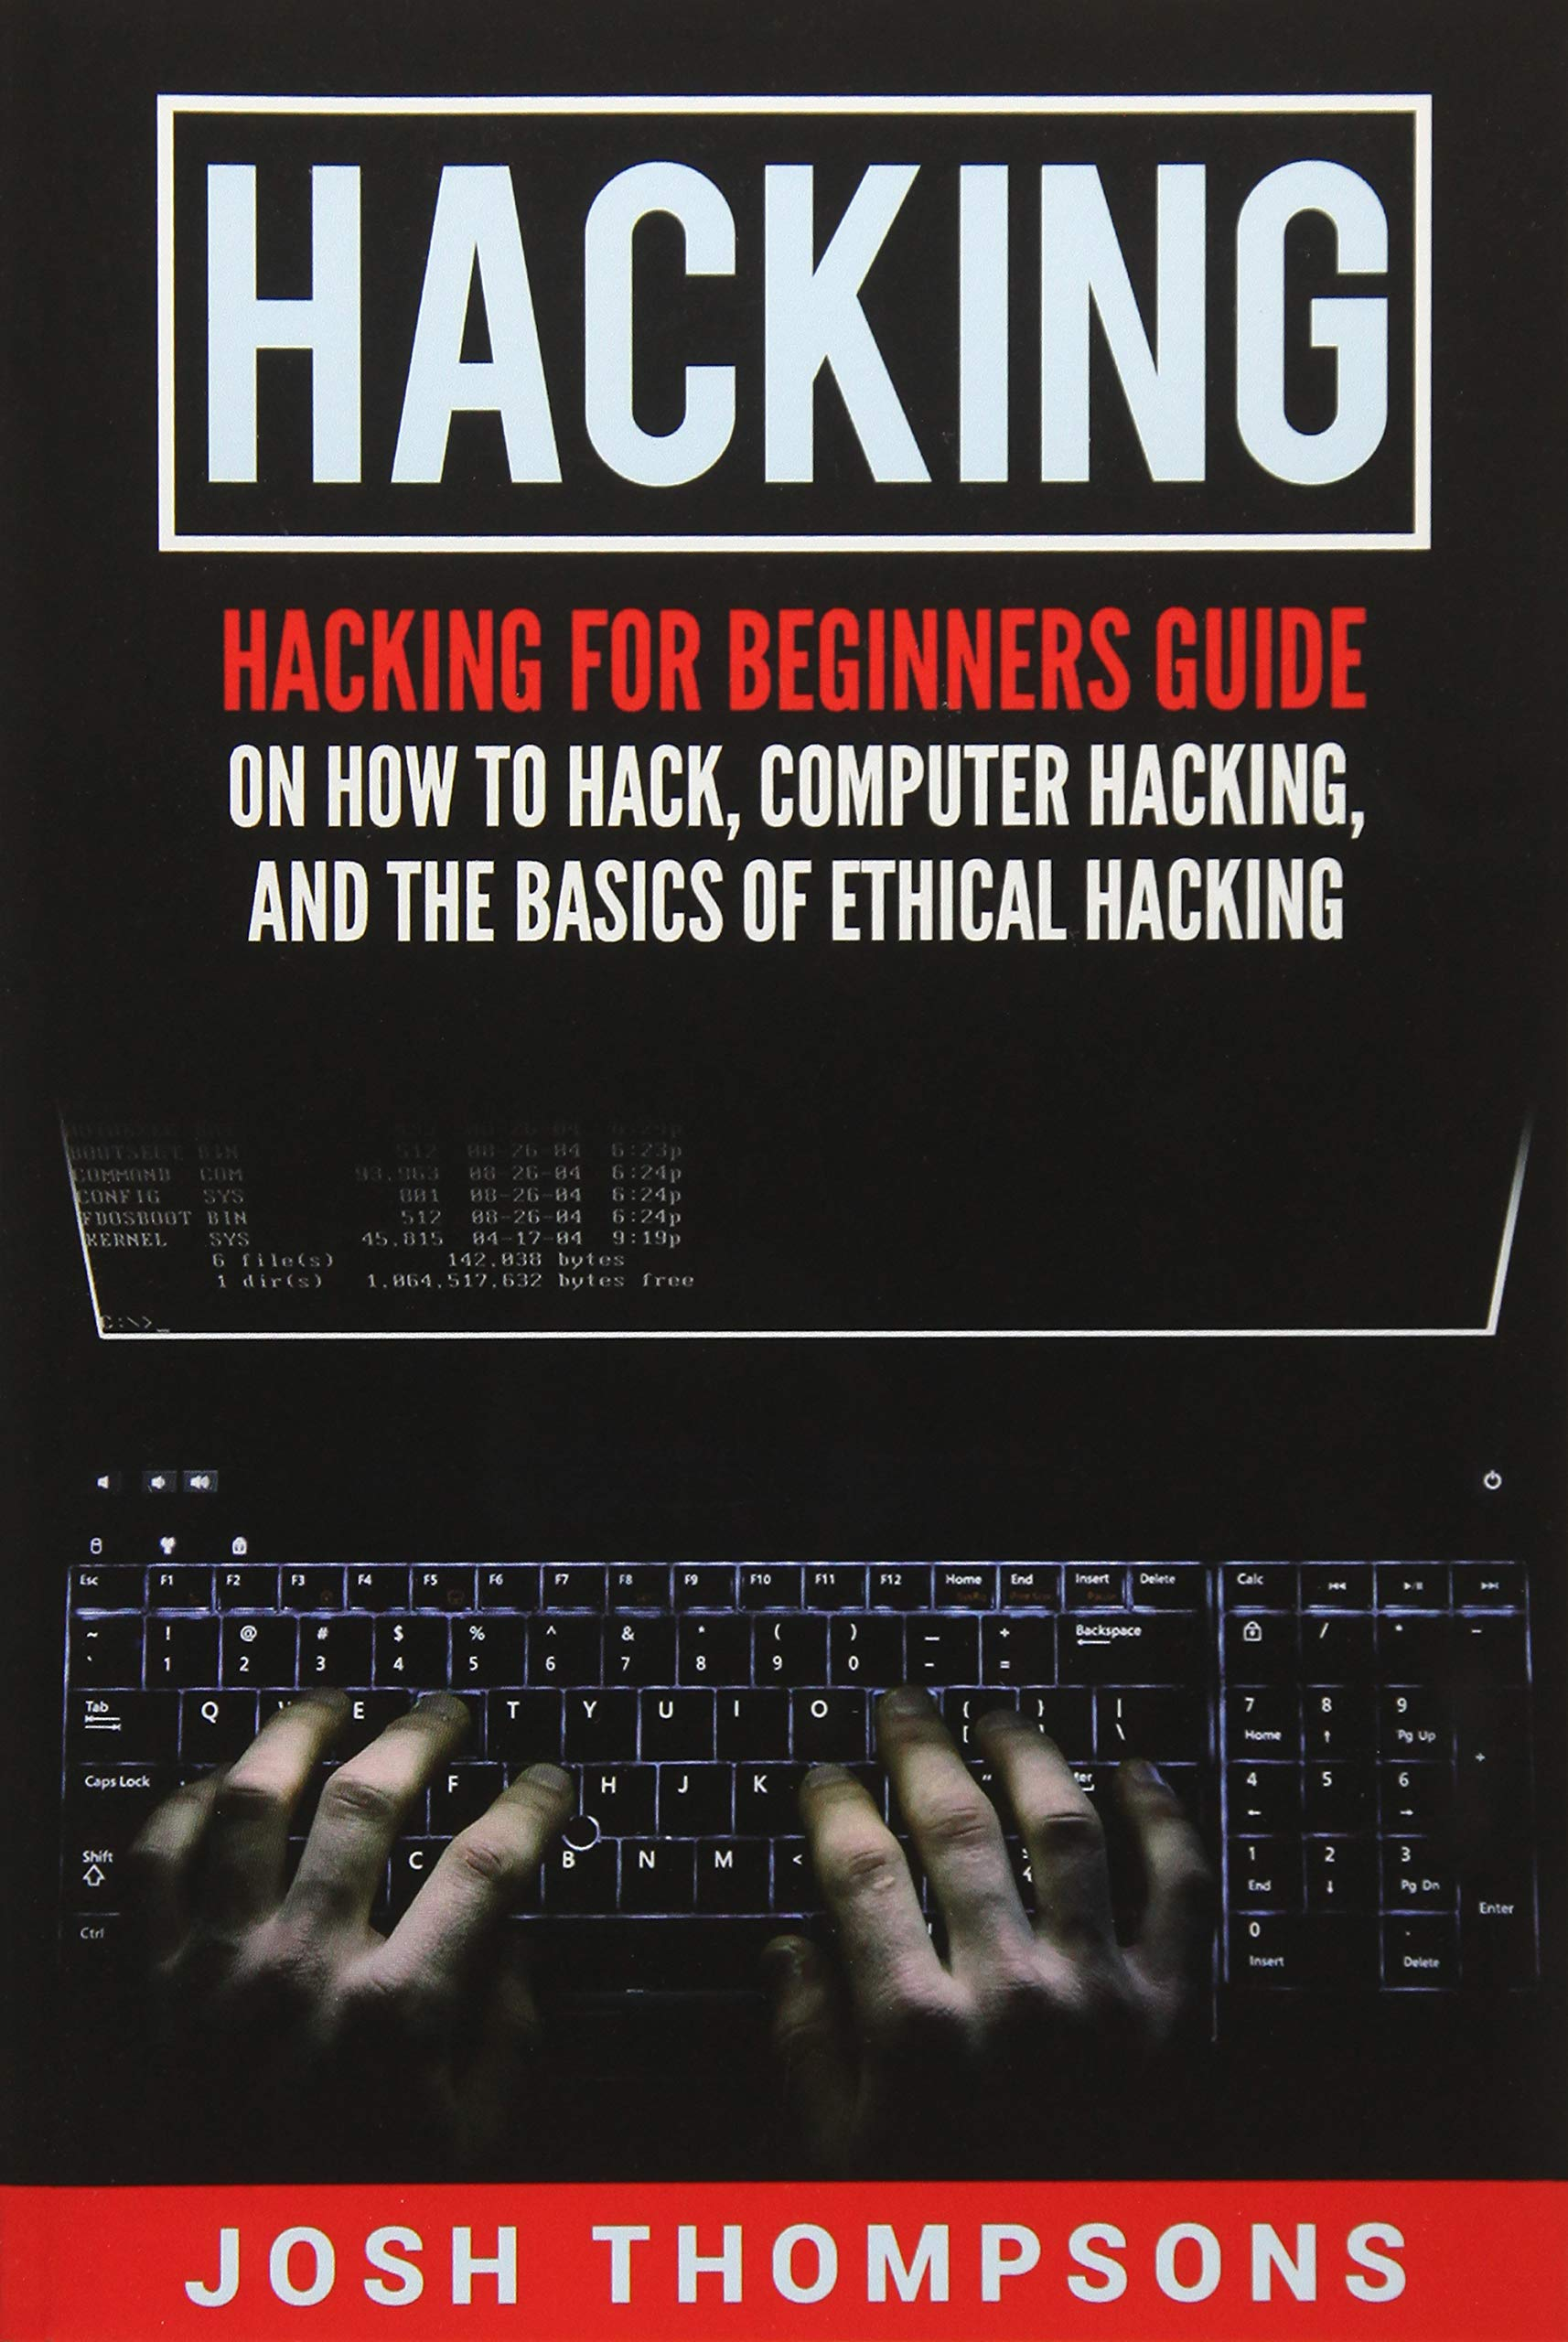 Hacking: Hacking For Beginners Guide On How To Hack, Computer Hacking, And  The Basics Of Ethical Hacking (Hacking Books): Josh Thompsons:  9781546548935: ...